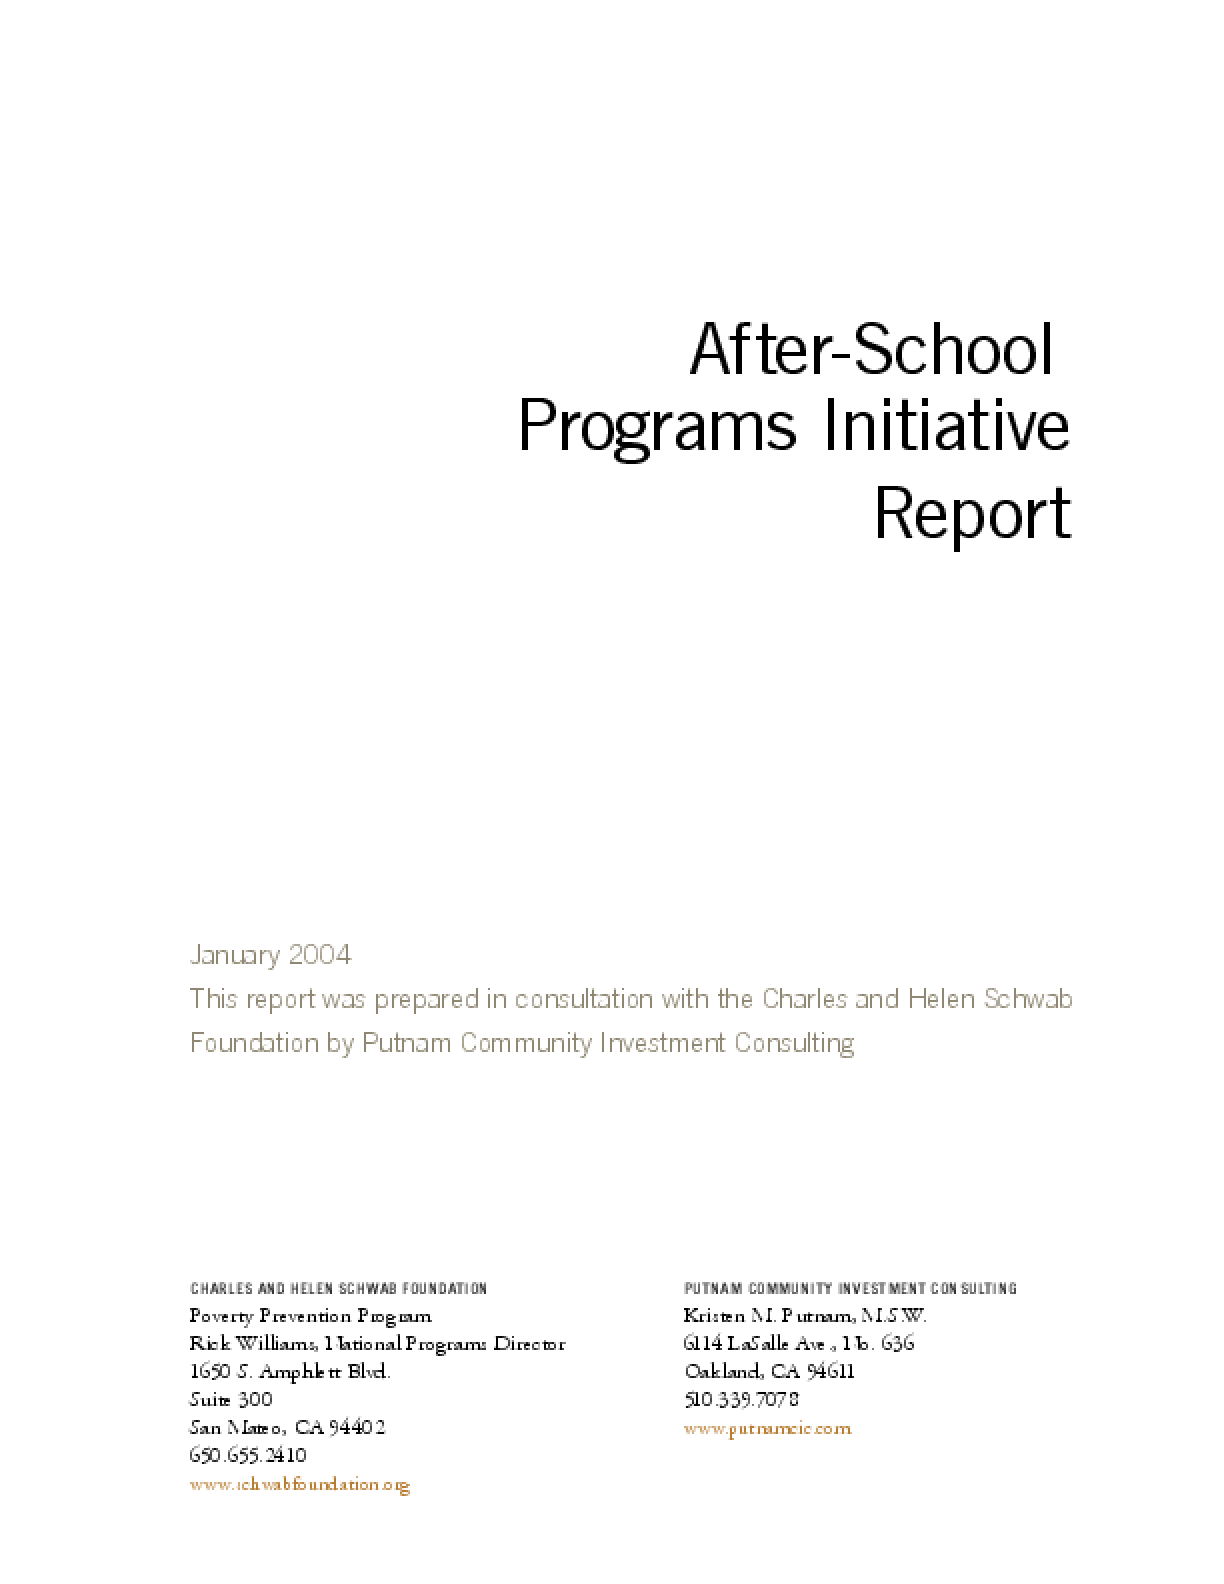 After-School Programs Initiative Report